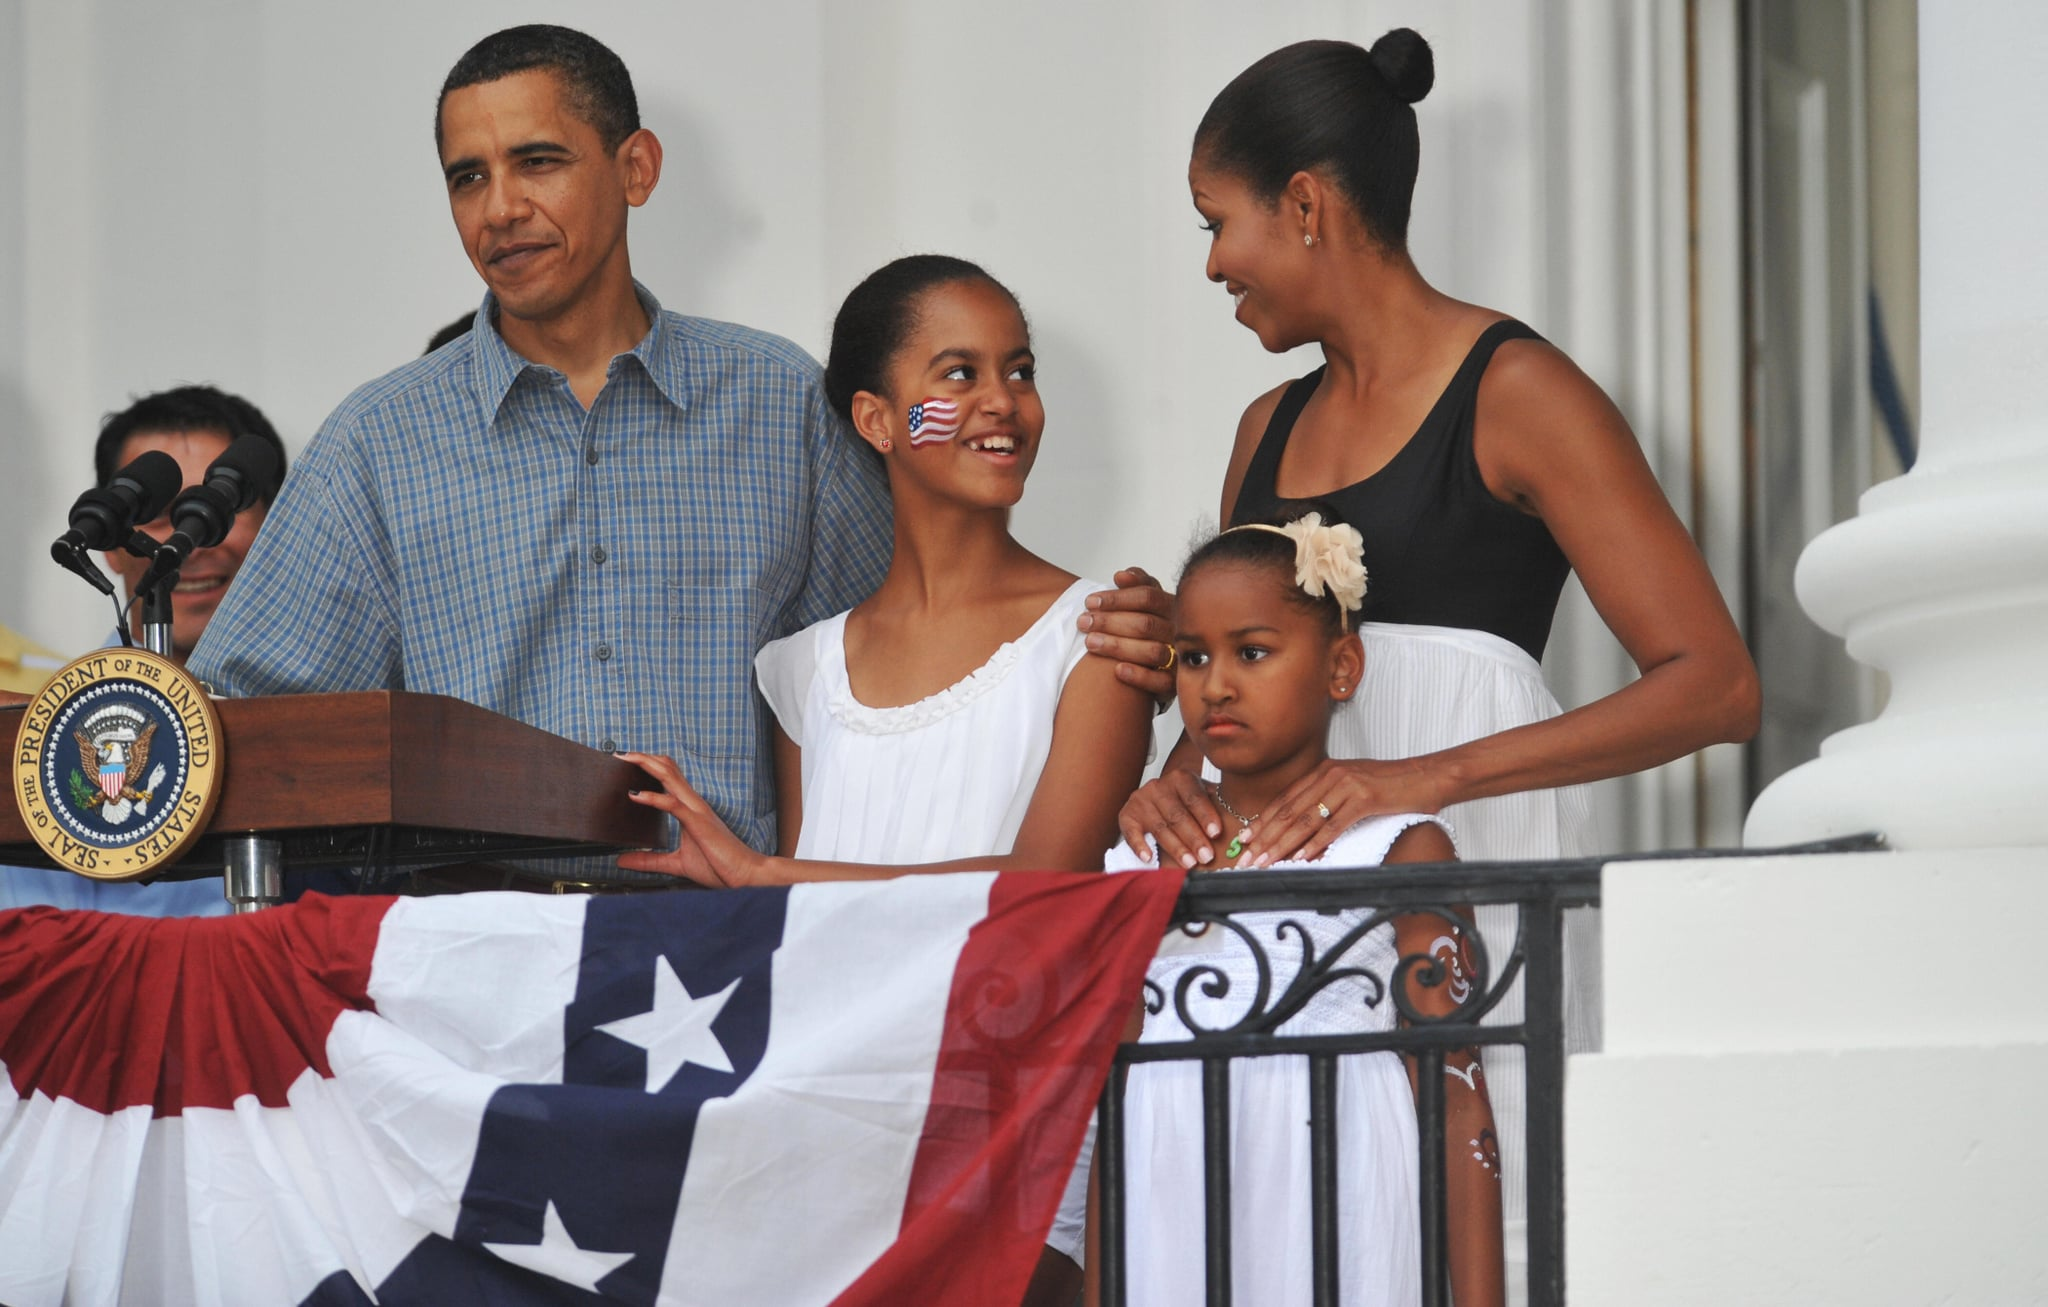 Malia rocked some red, white, and blue face paint in 2009.